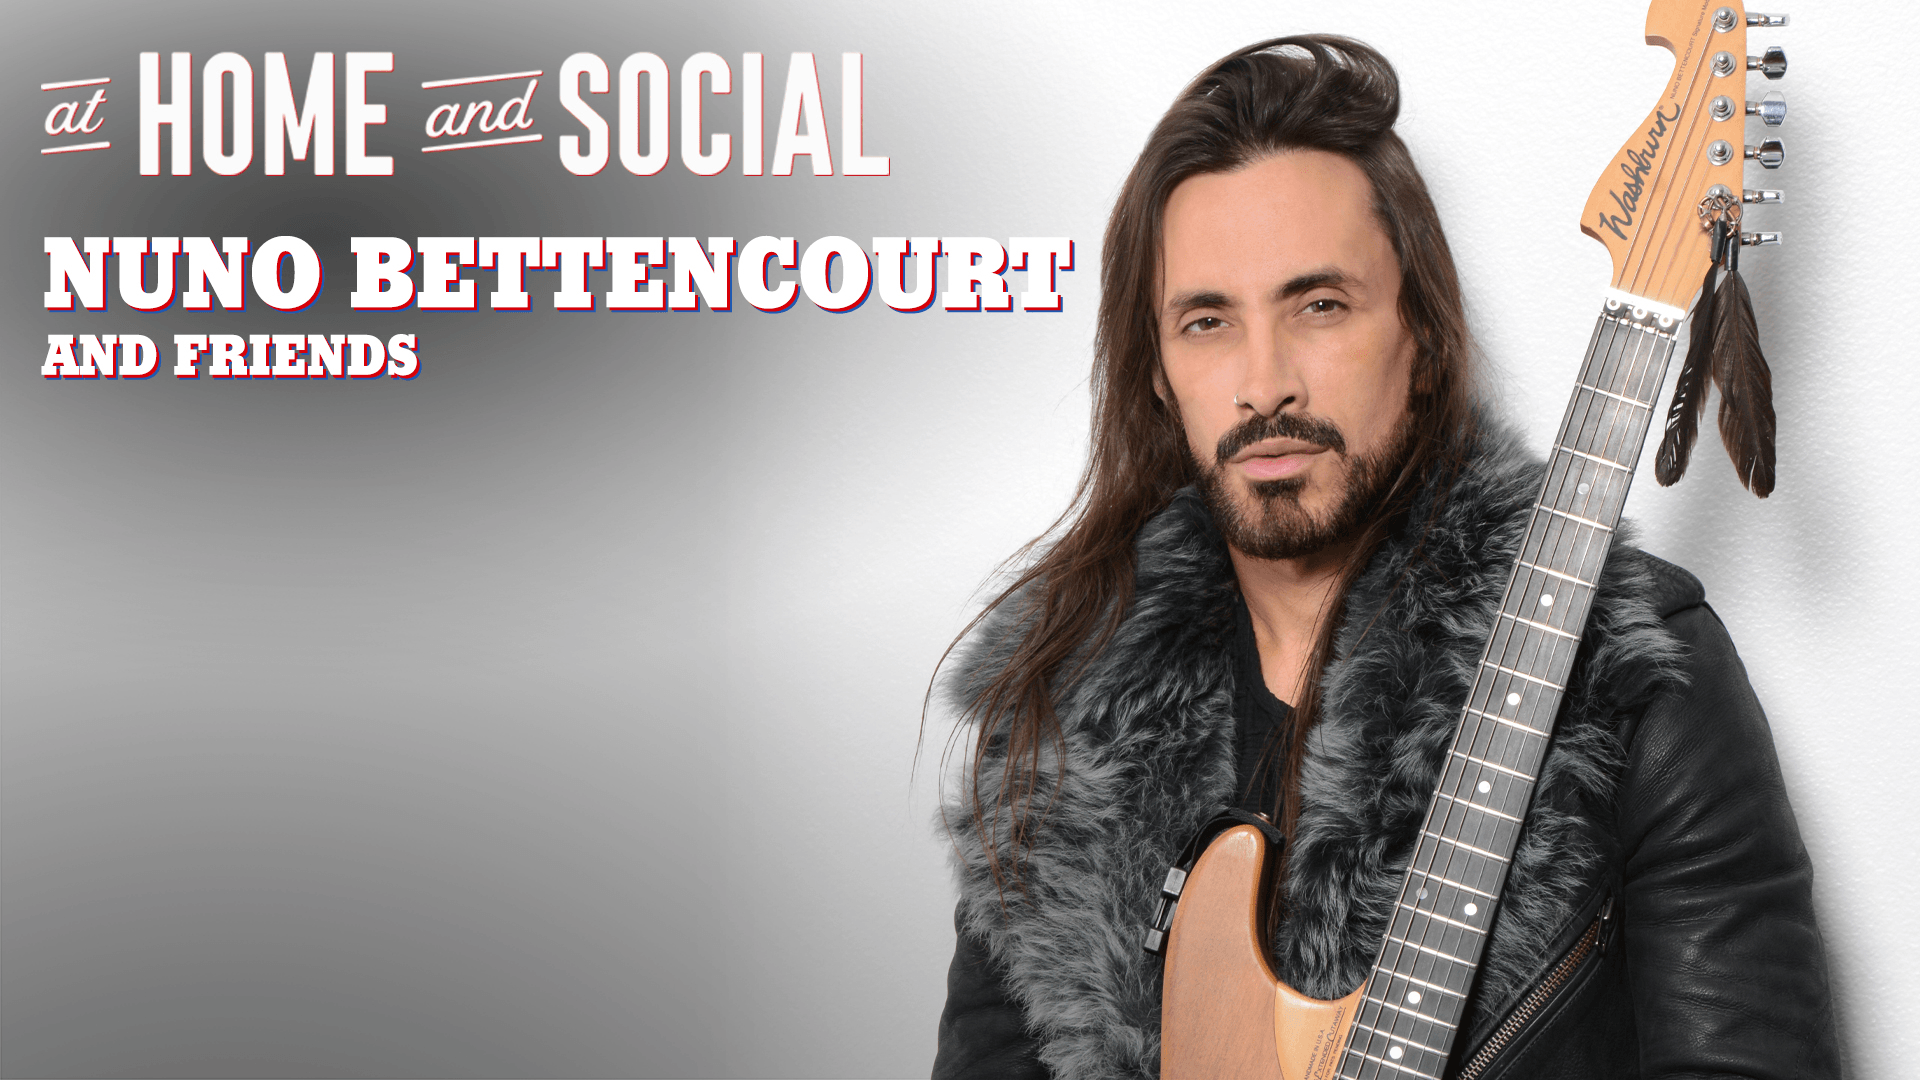 At Home and Social with Nuno Bettencourt & Friends